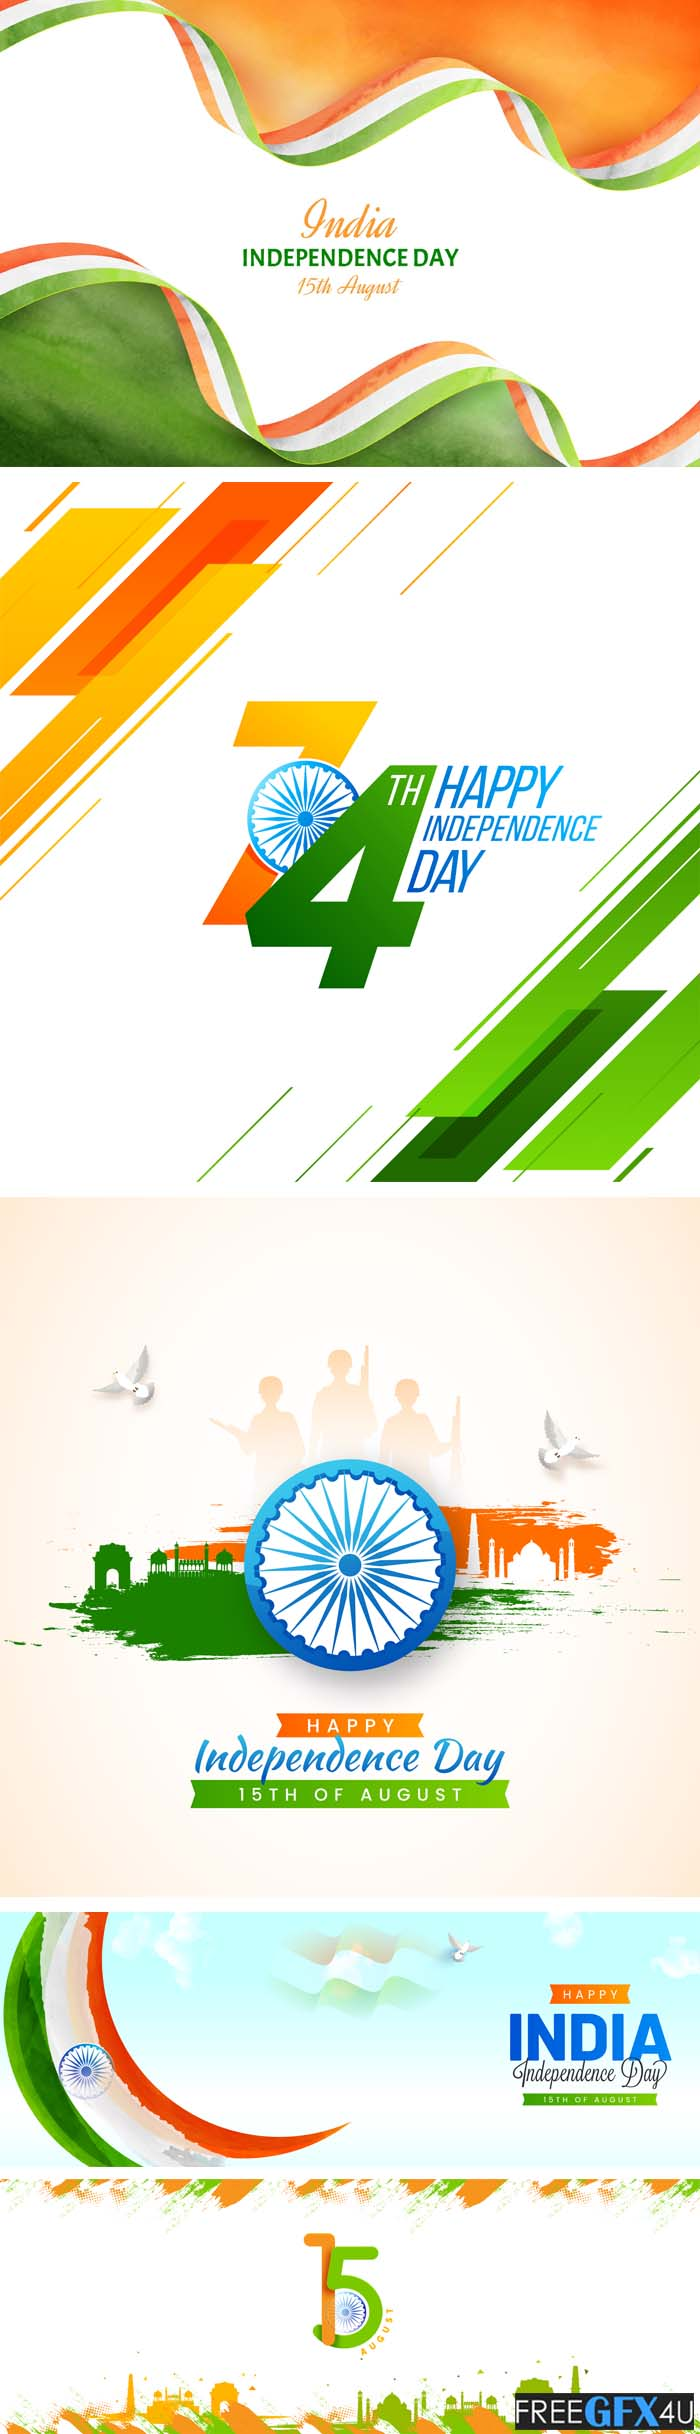 India Independence Day 15 August